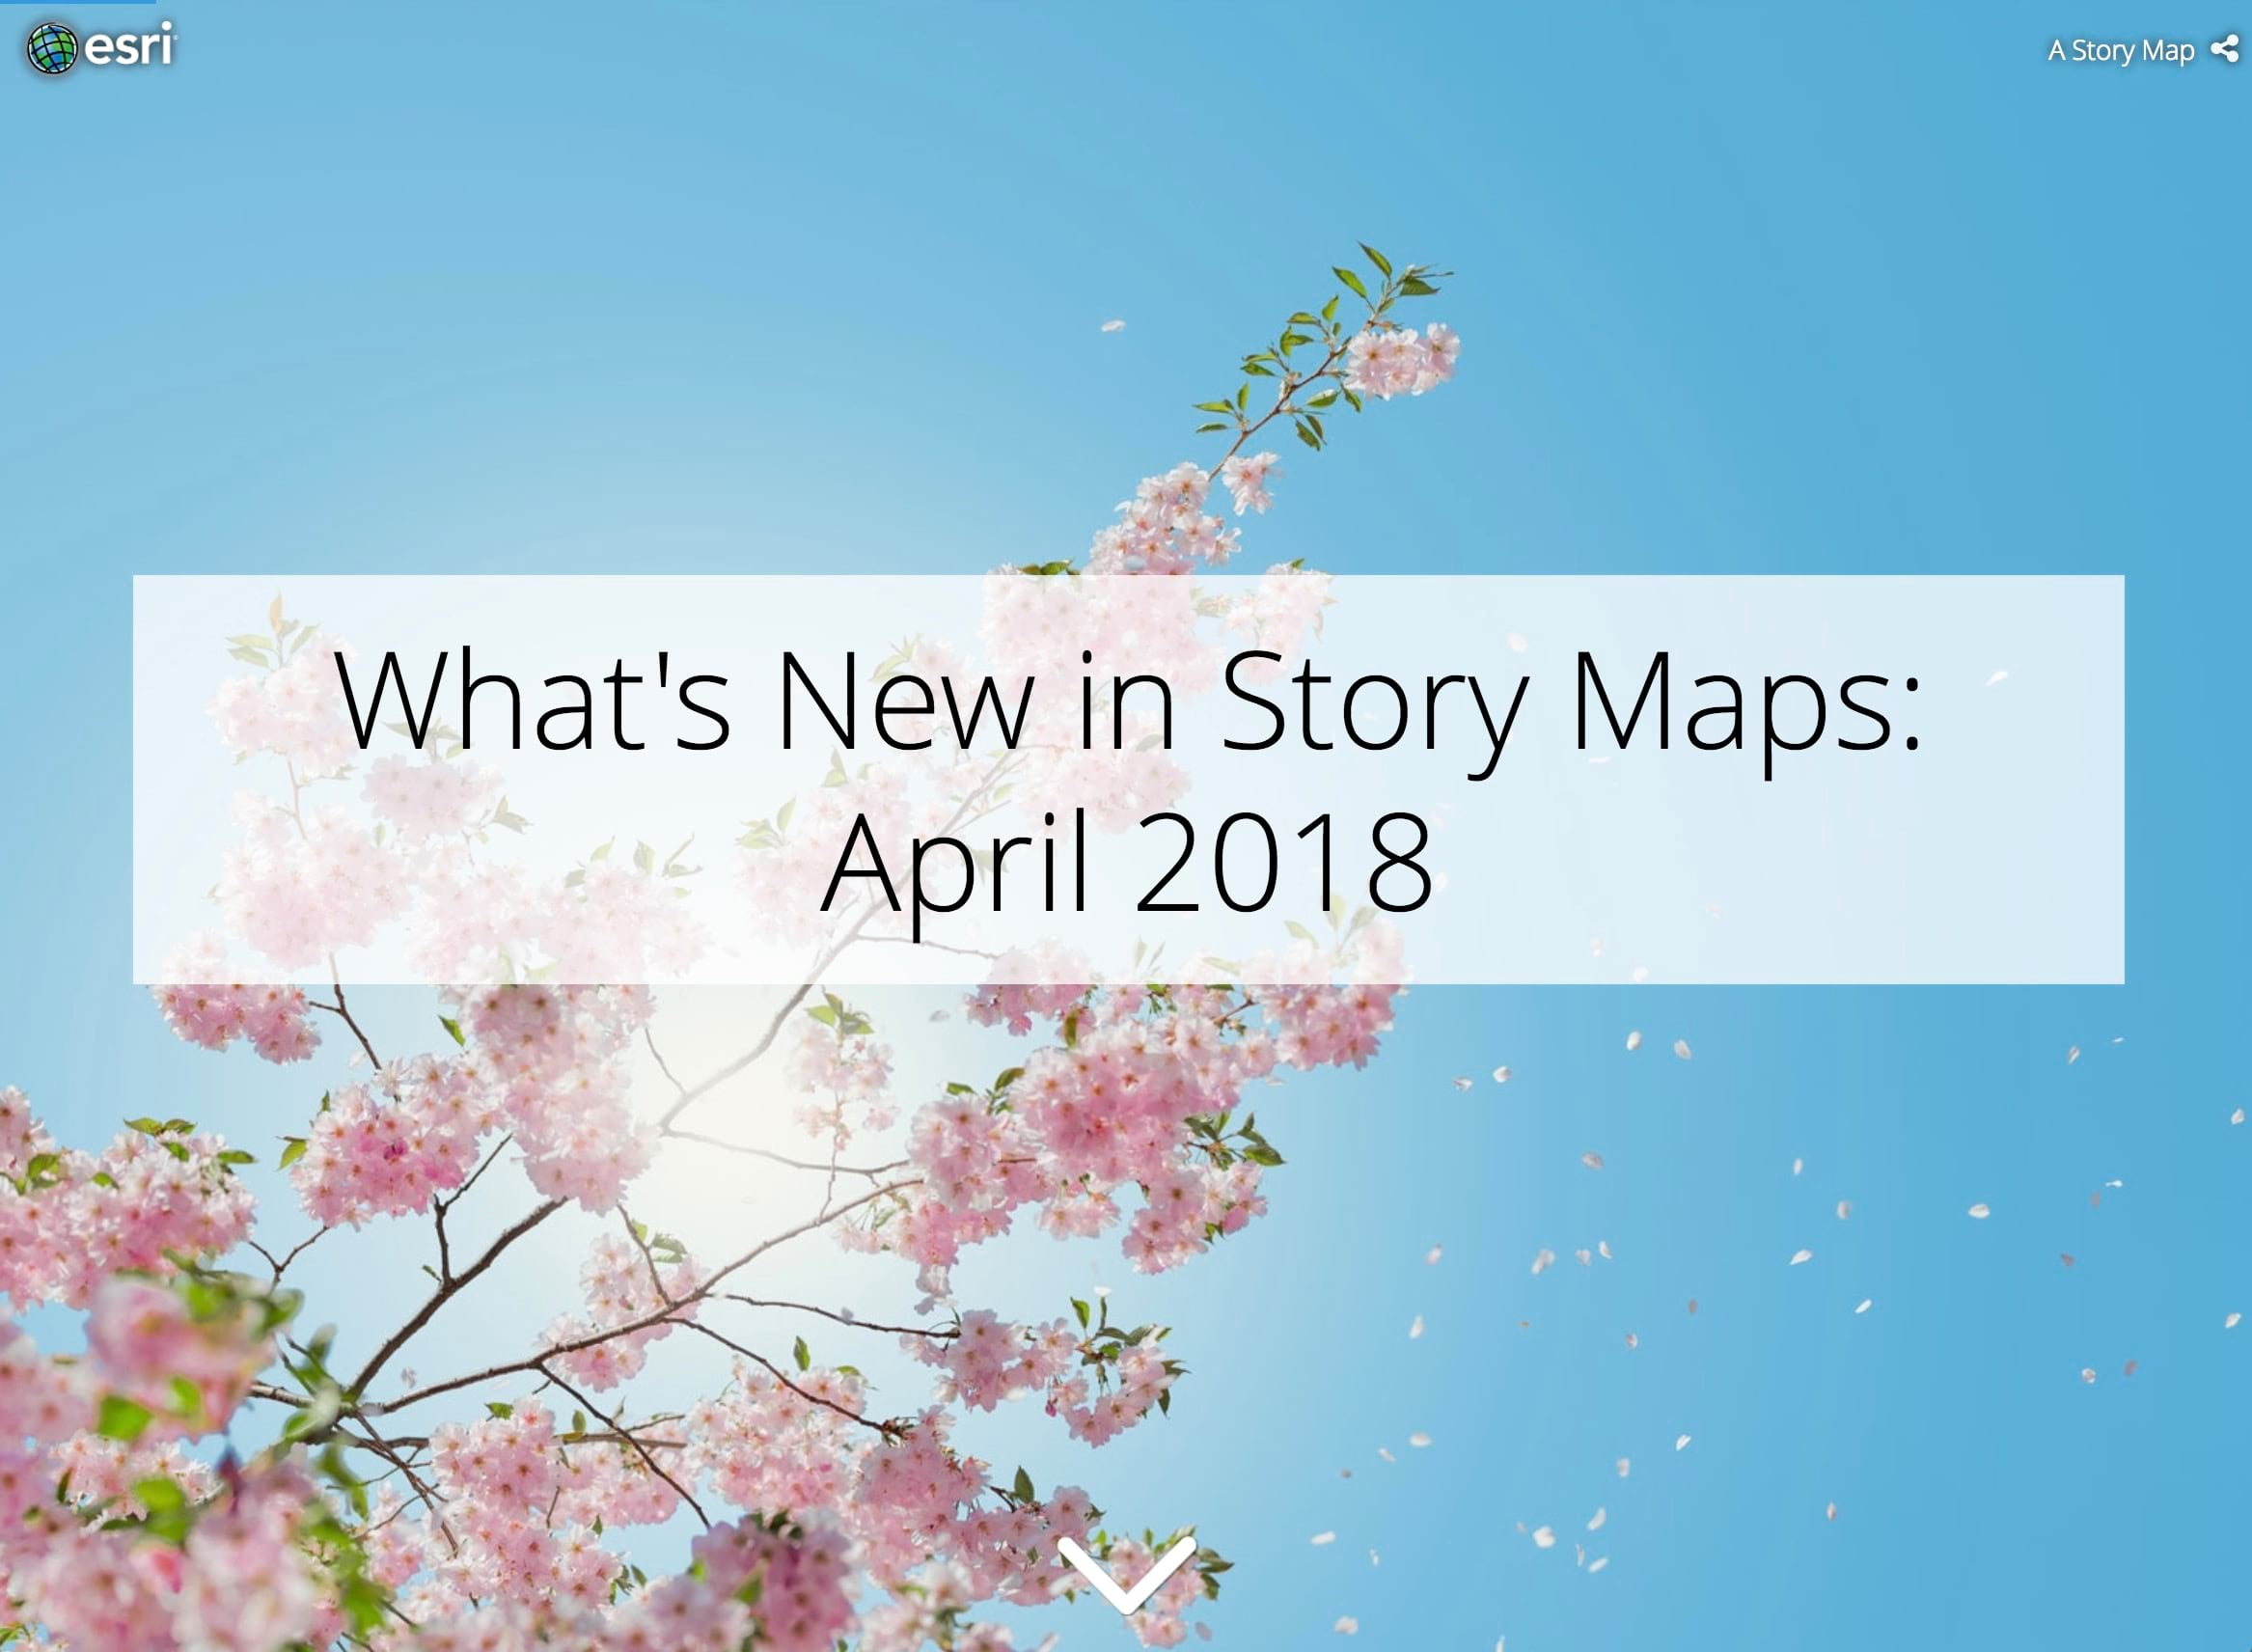 What's New in Story Maps